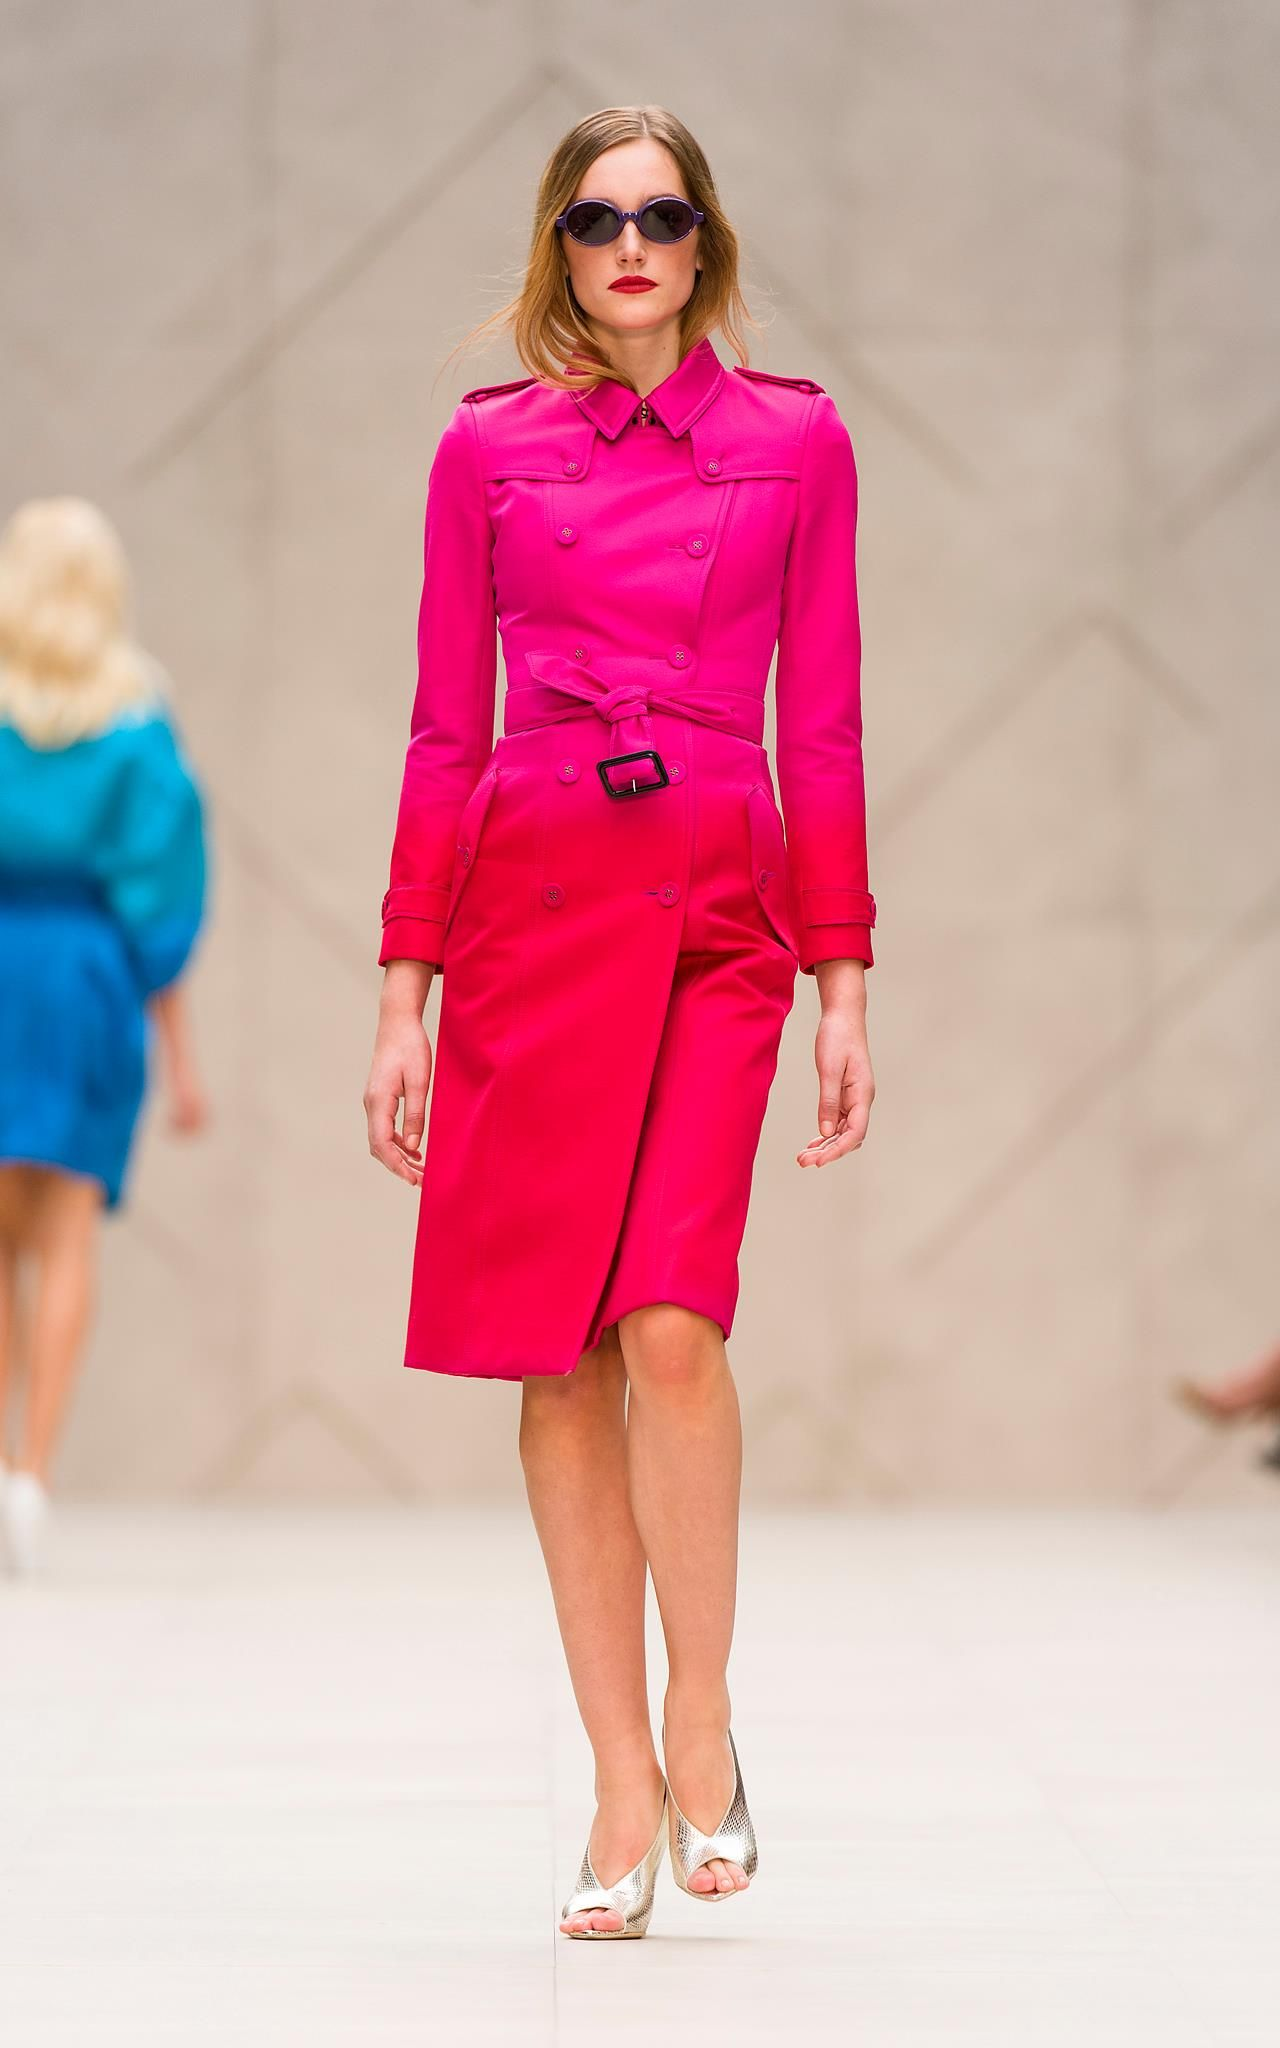 The Burberry Prorsum Spring/Summer 2013 collection, shot in London on Monday 17